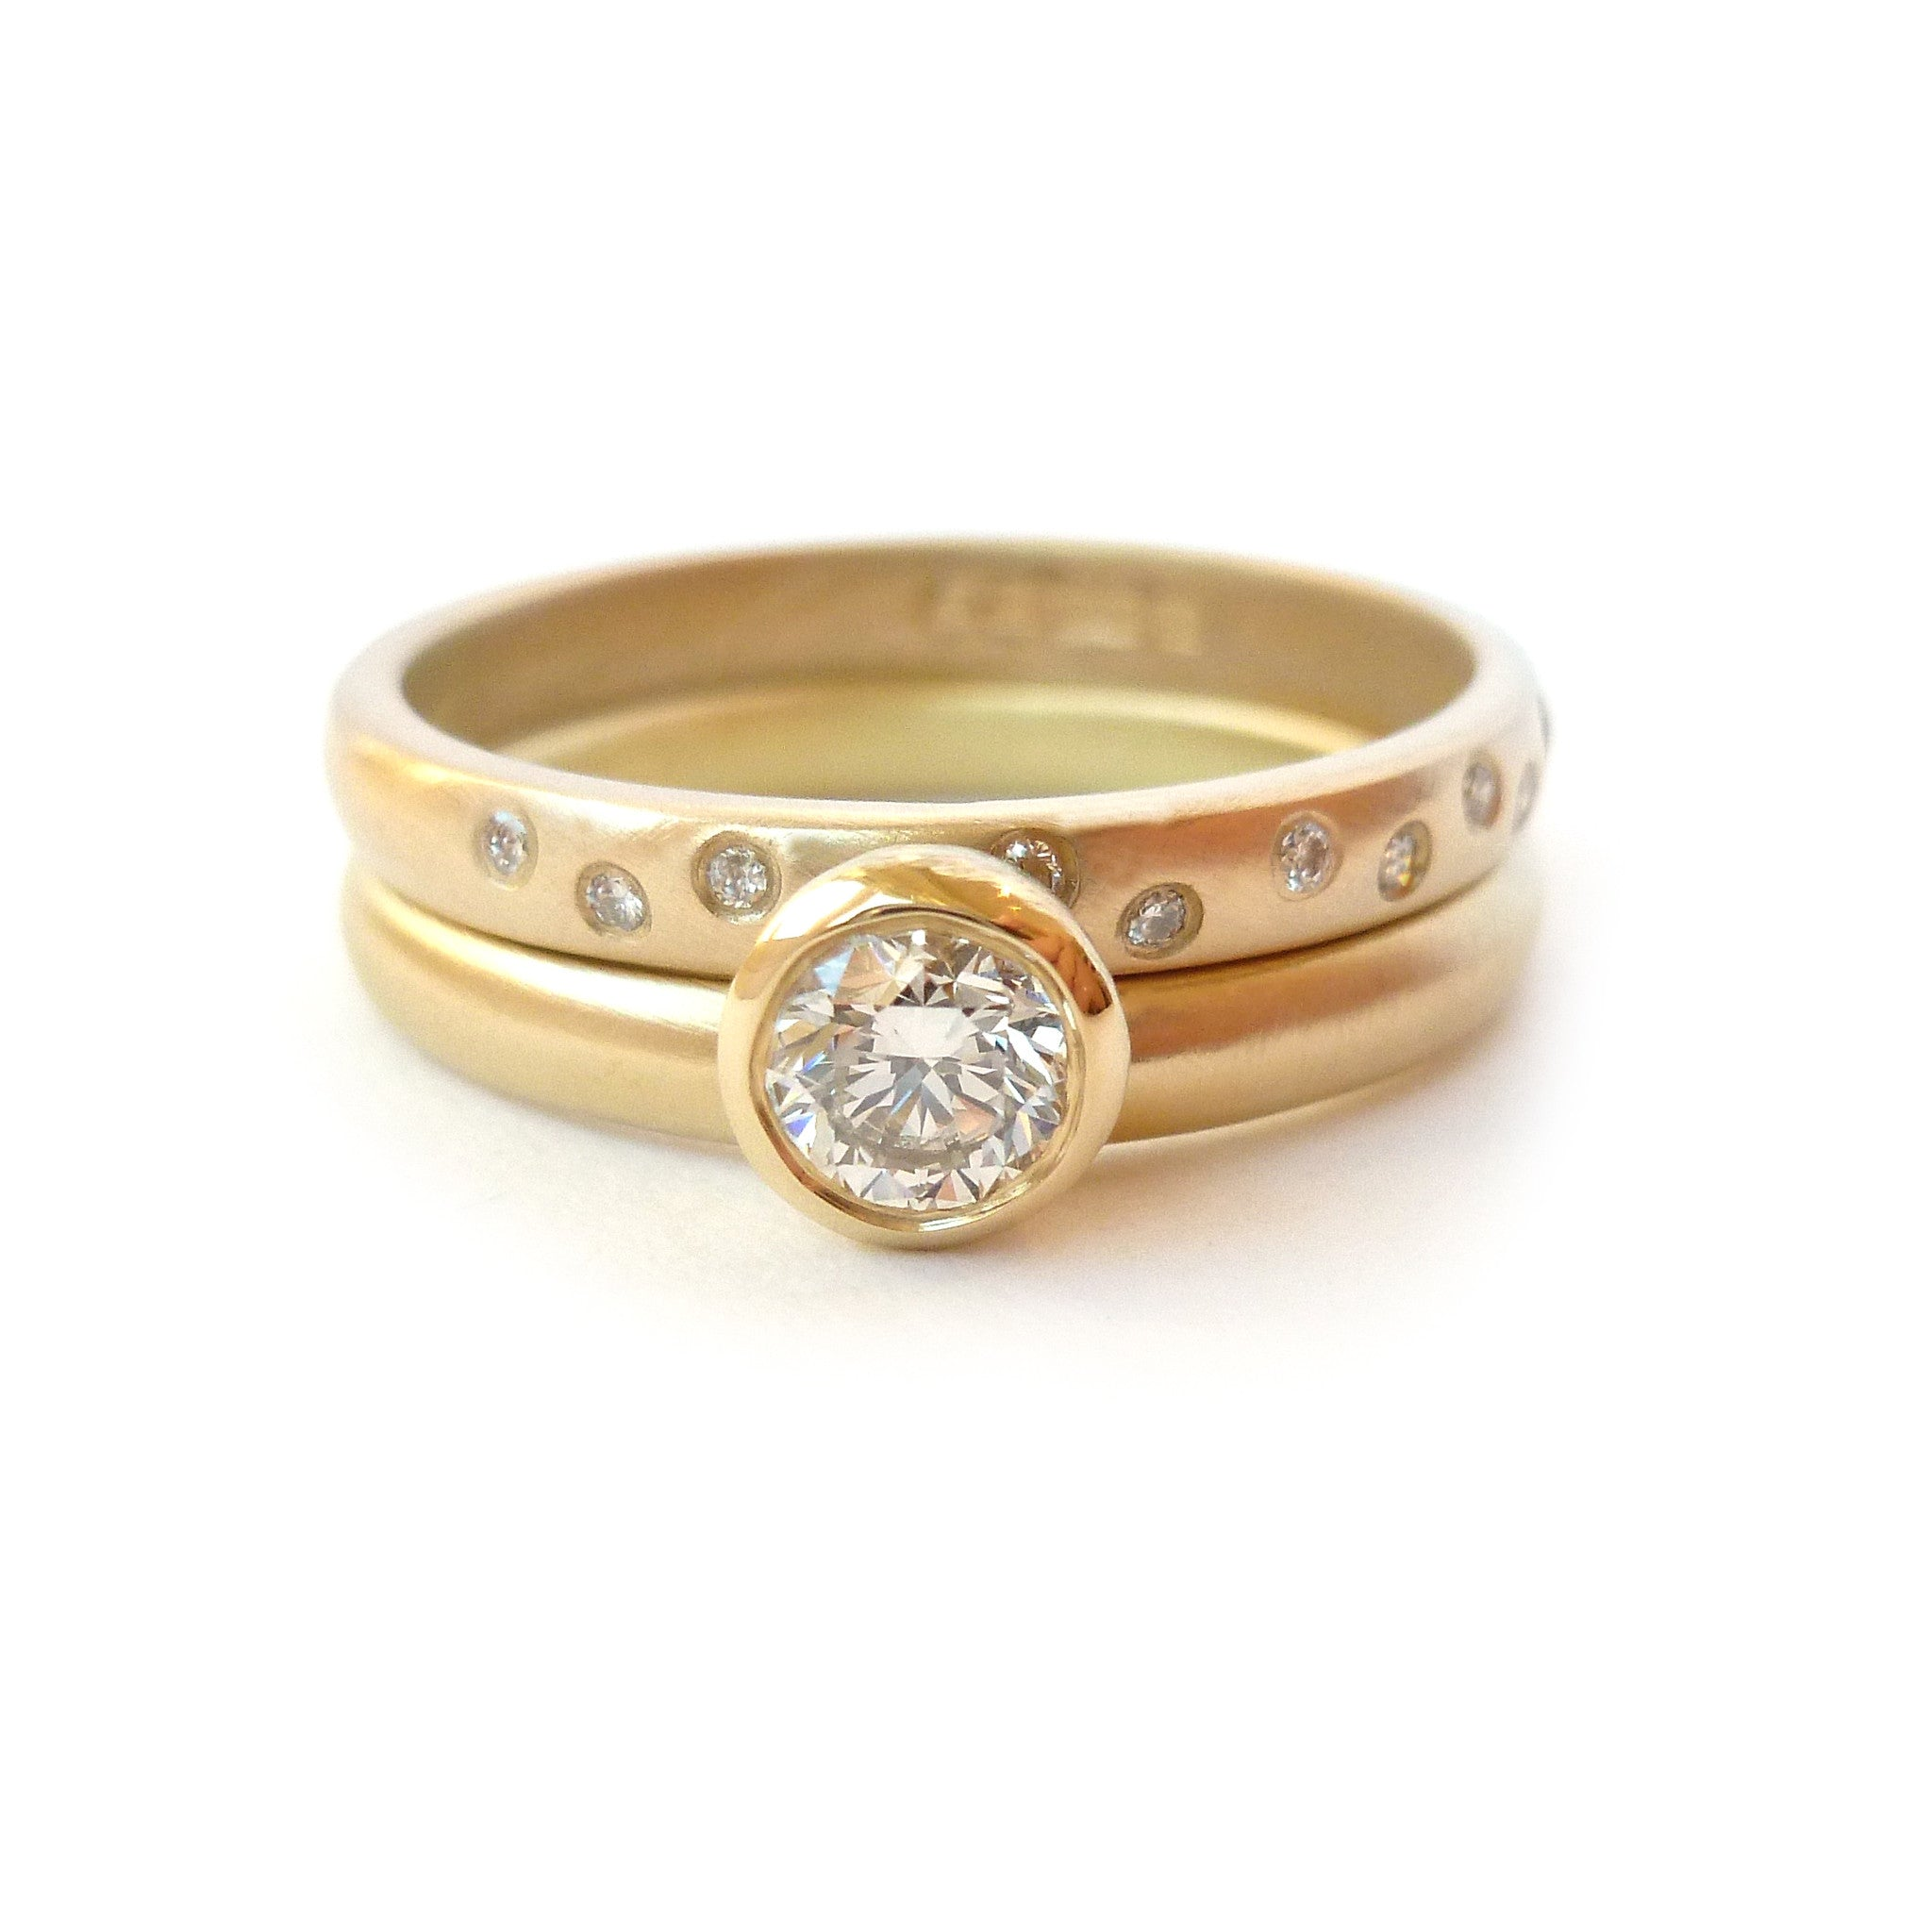 blog on a modern our jess brent spotlight rings post wedding